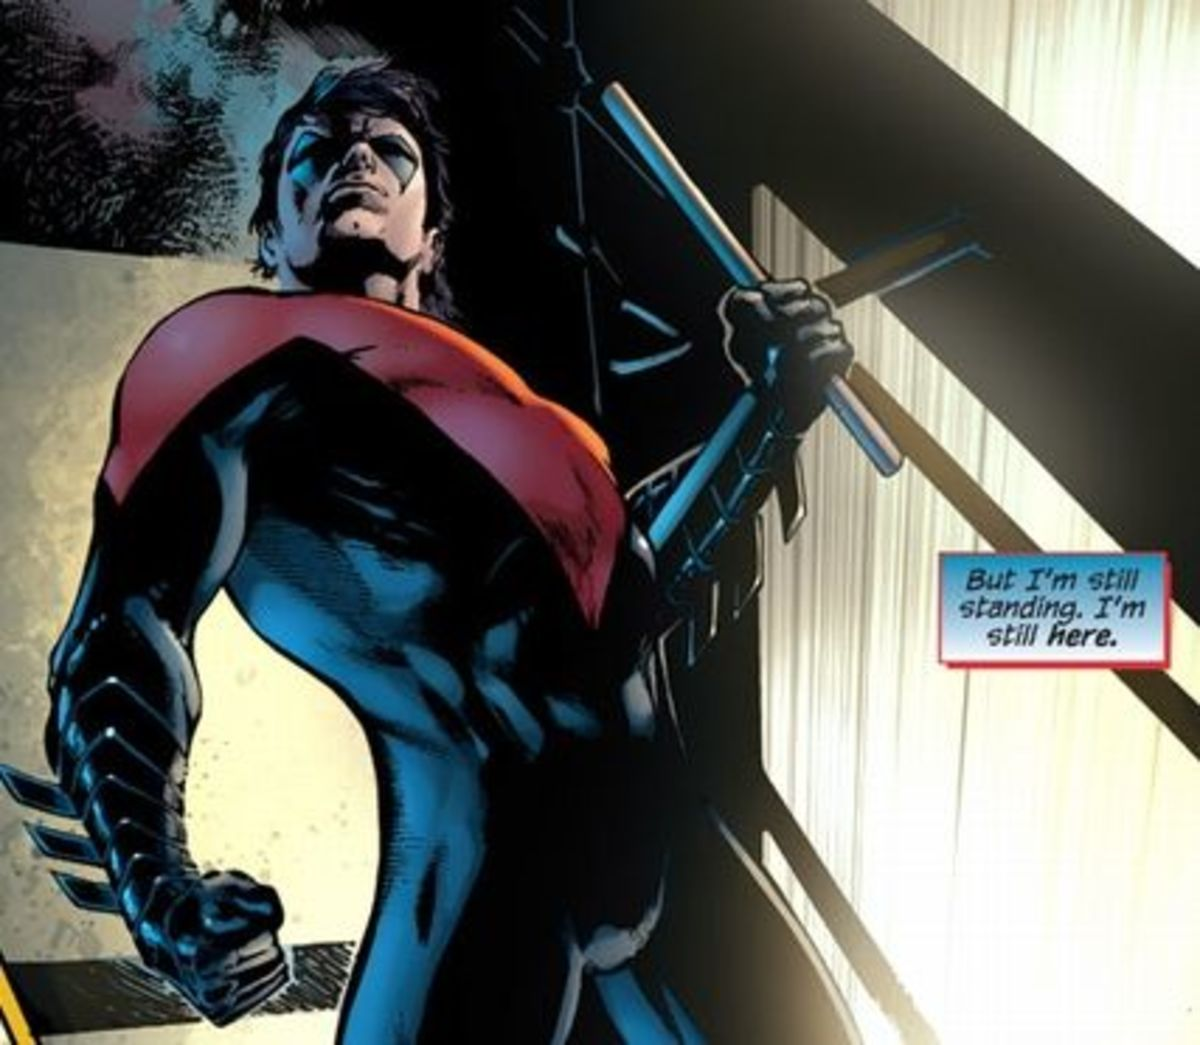 Nightwing #1, excerpt